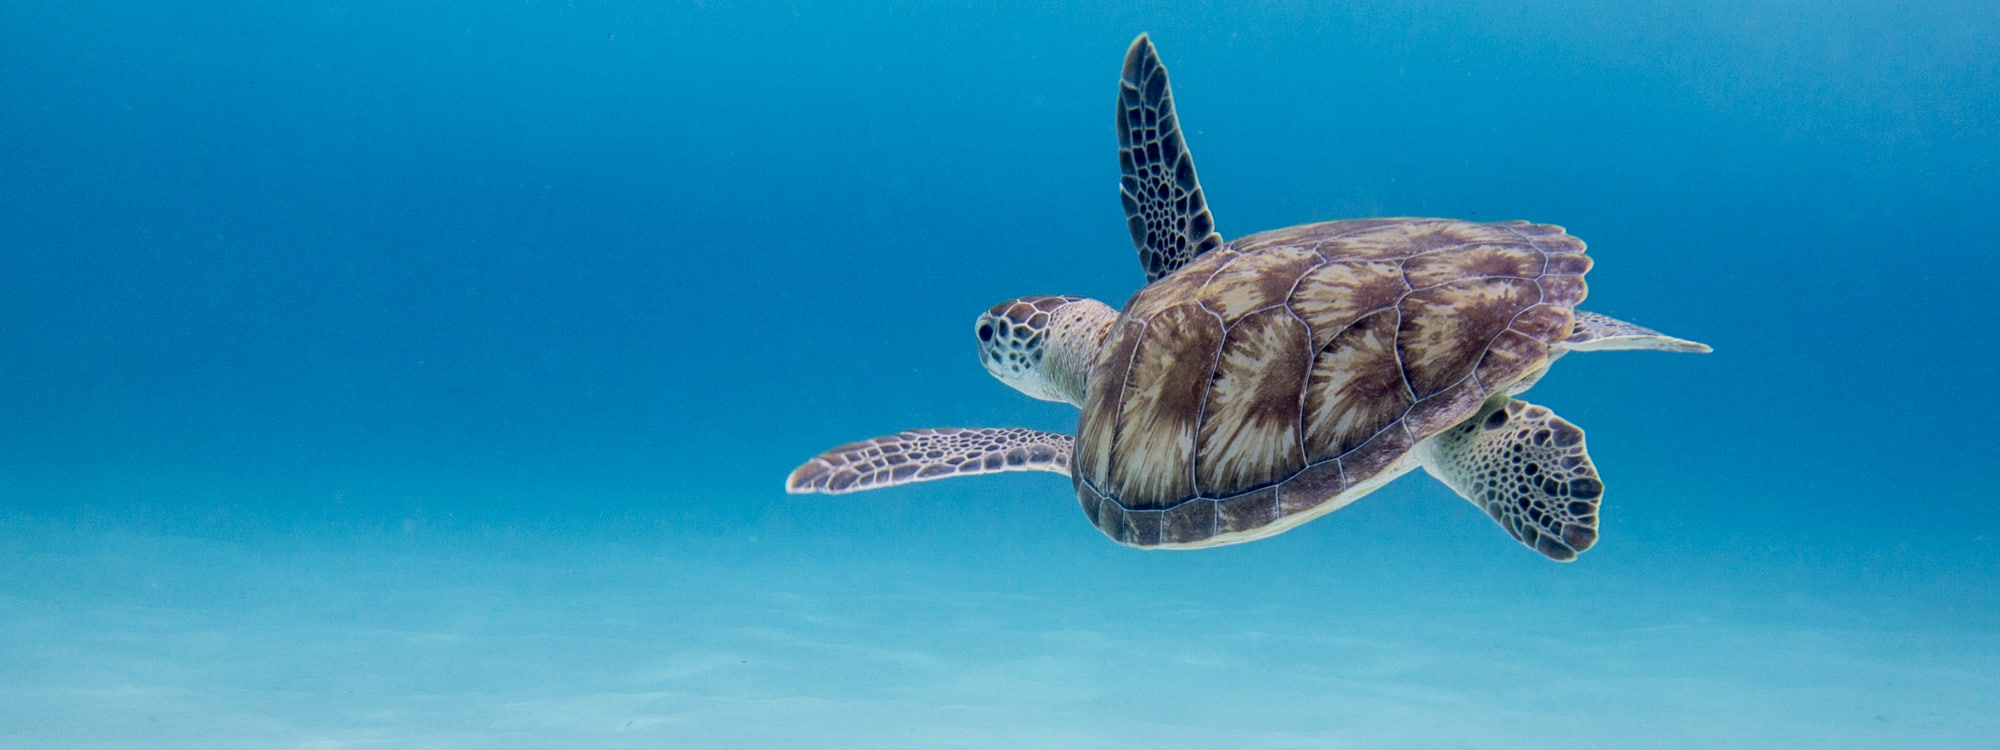 Sea Turtle Season Underway